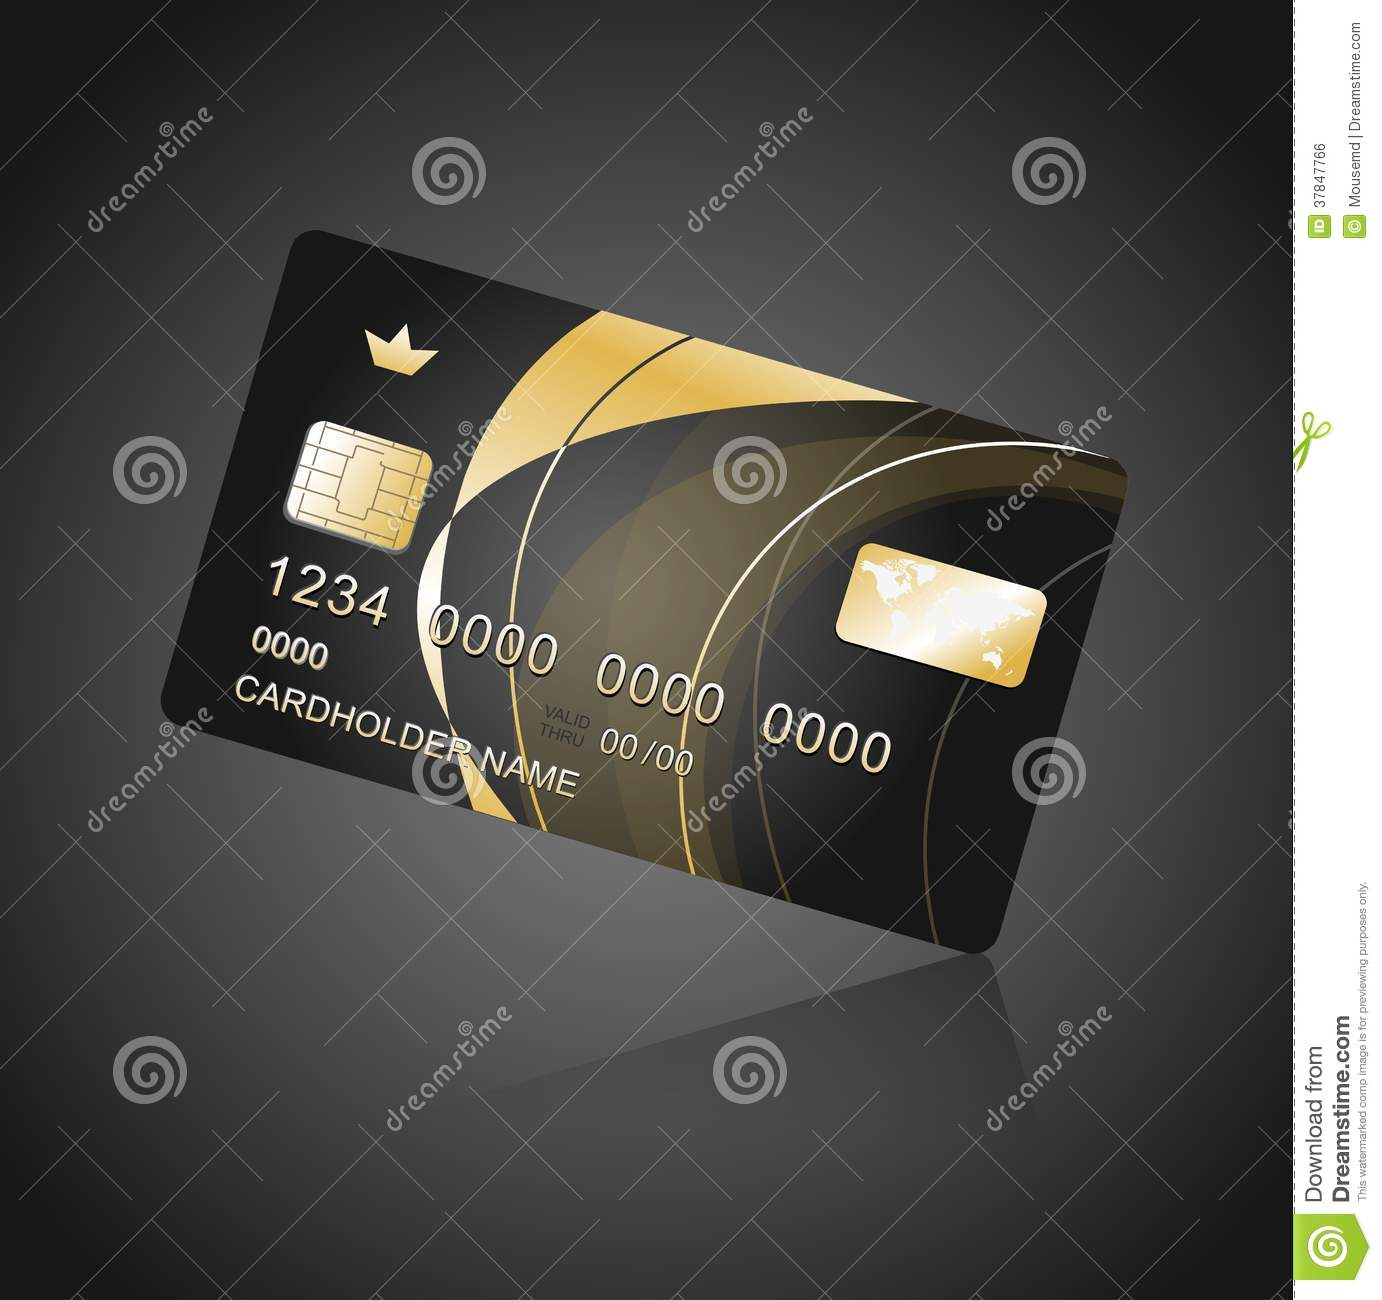 commerce bank business credit card